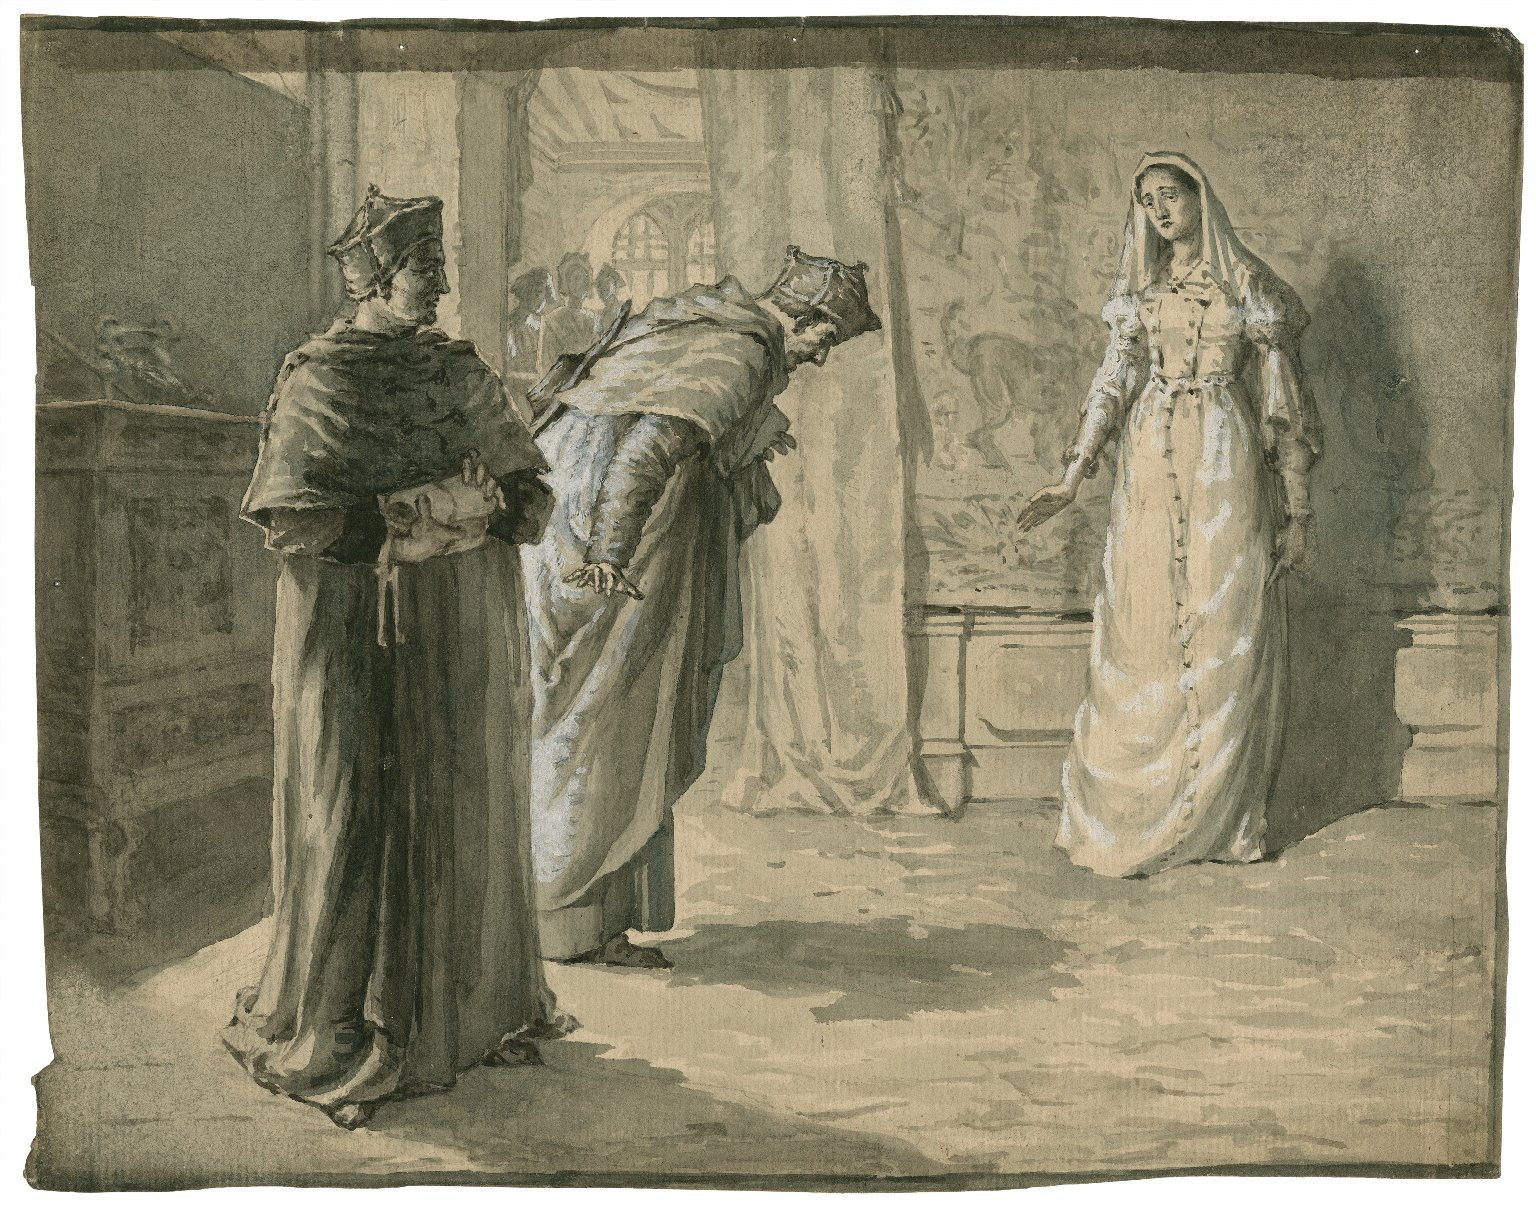 [Scene from King Henry VIII, 1, with Queen Katherine, Cardinal Wolsey, and Cardinal Campeius] [graphic].